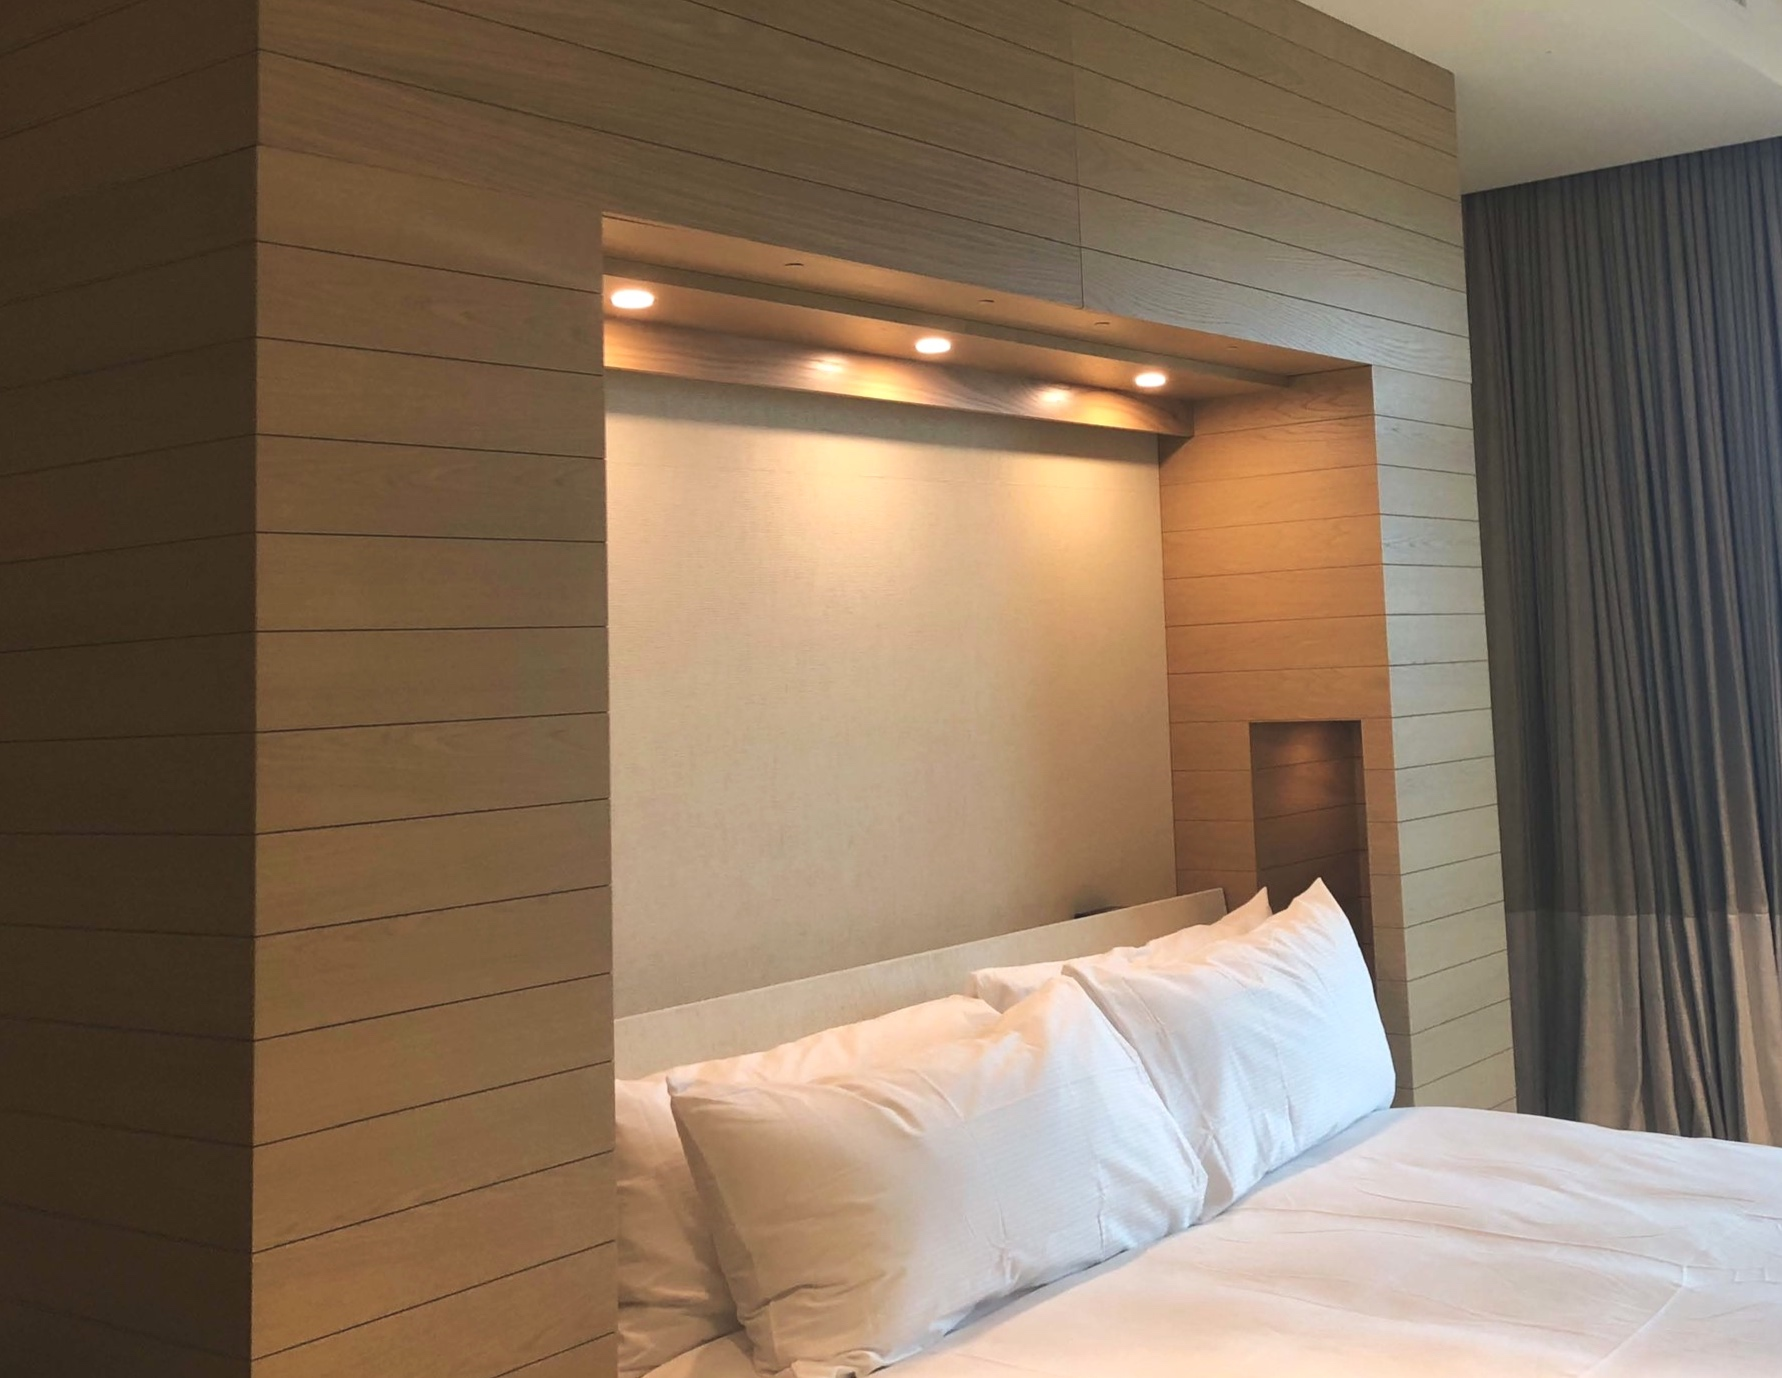 Guest Friendly Experience:  Built-in LED lights and USB/power outlets and additional space creates openness in room for guest relaxation